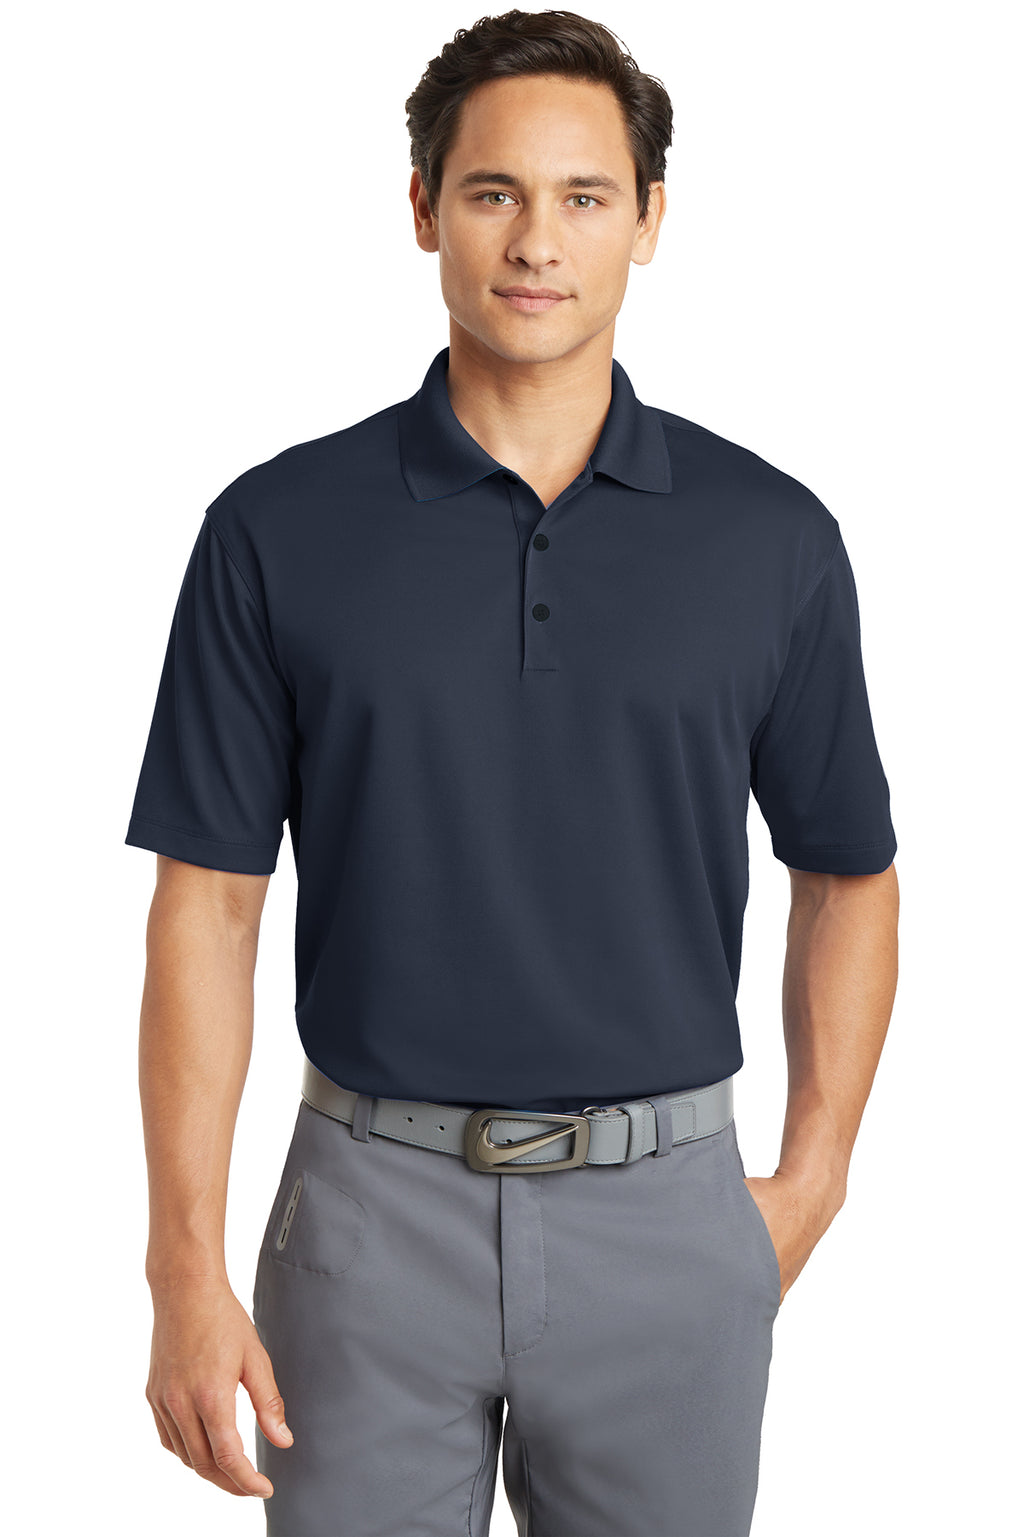 Nike Golf - Dri-FIT Micro Pique Value Polo